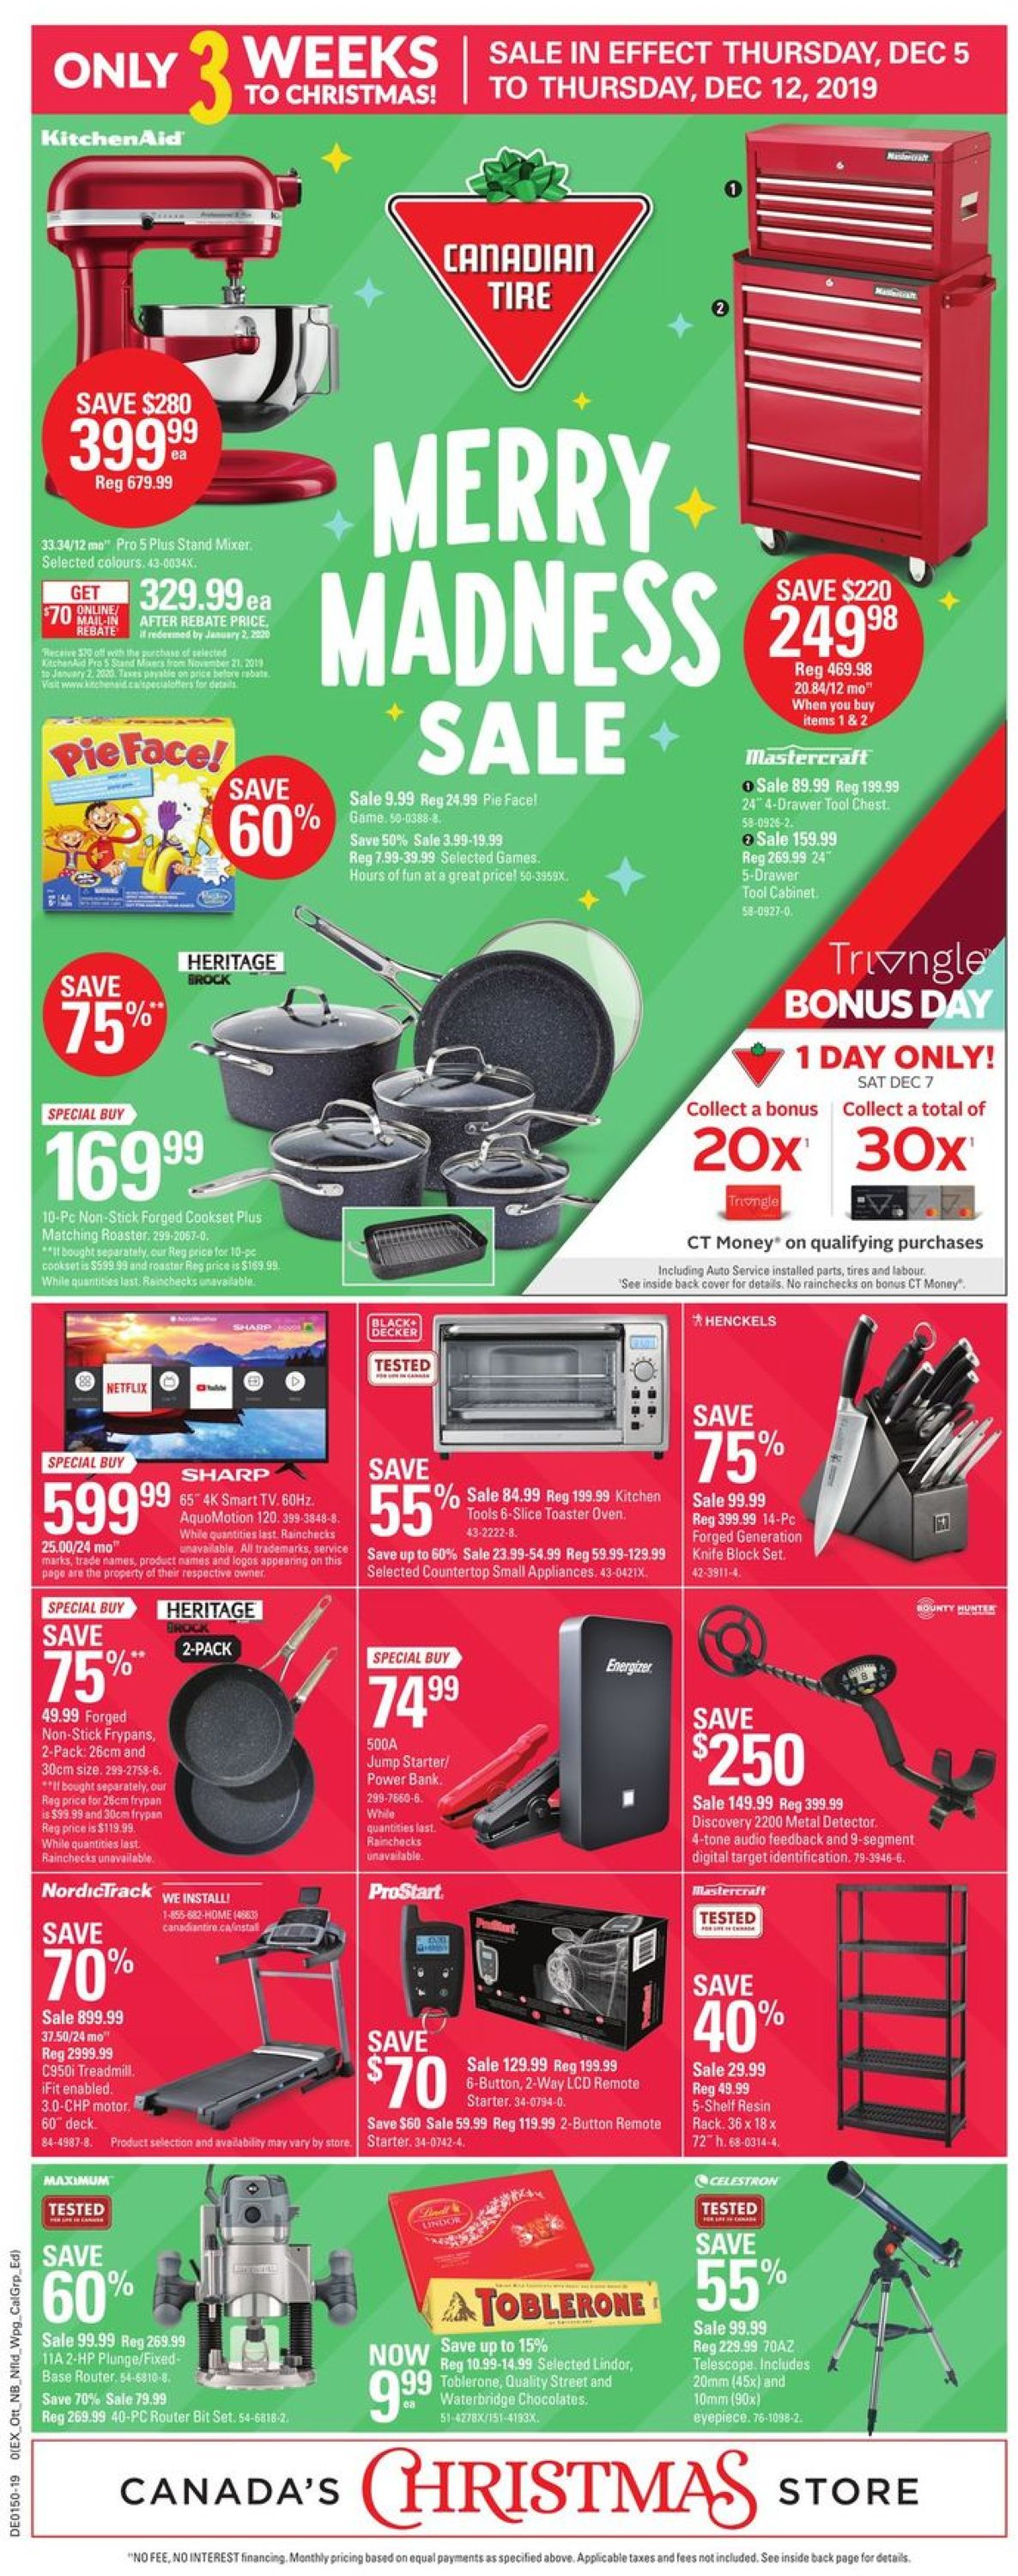 Canadian Tire - Christmas Flyer 2019 Flyer - 12/05-12/12/2019